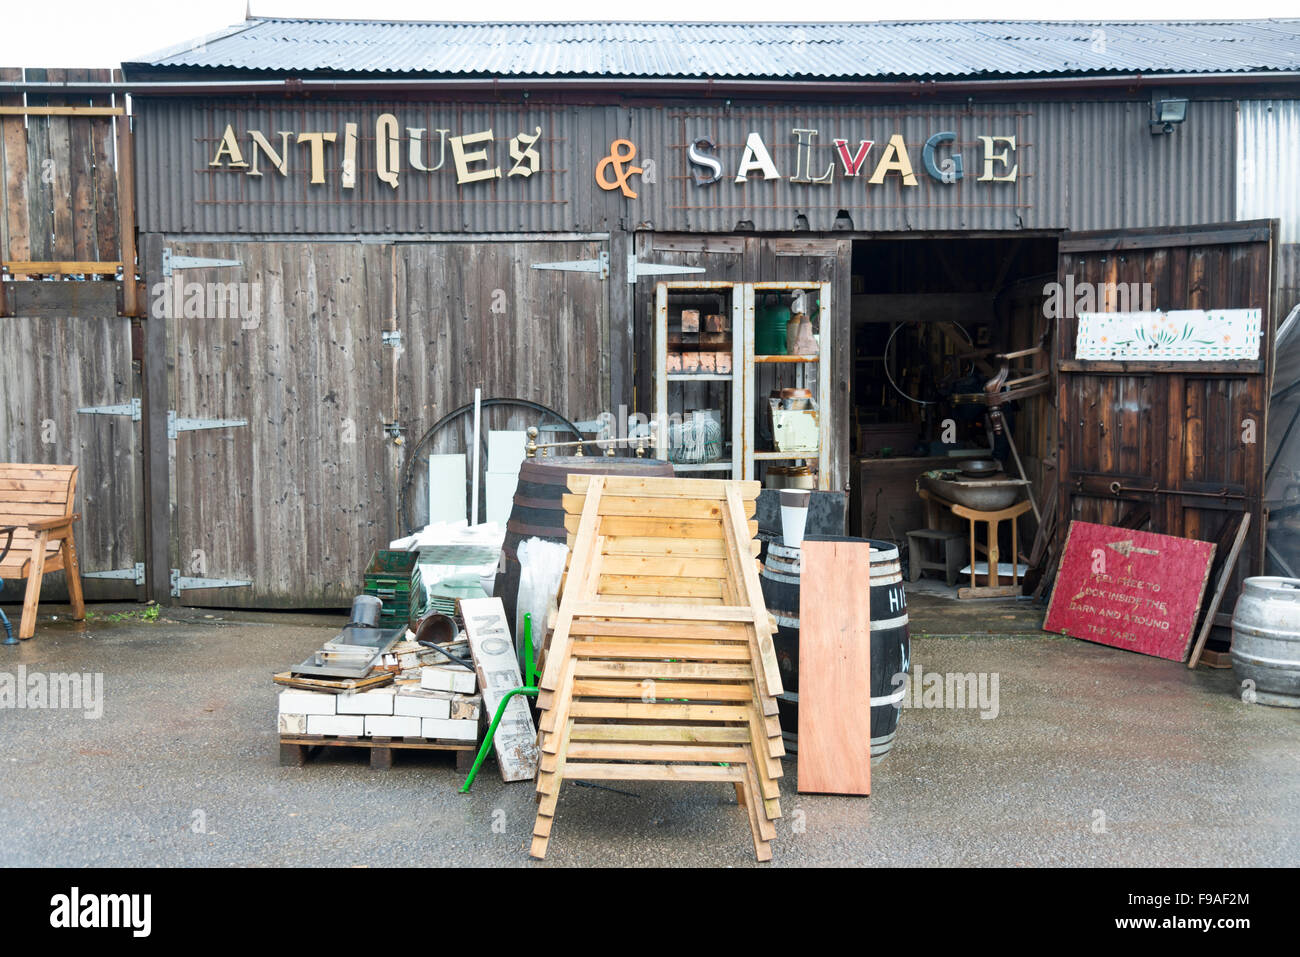 Furniture Stores Penrith Junk Shop Stock Photos And Junk Shop Stock Images Alamy